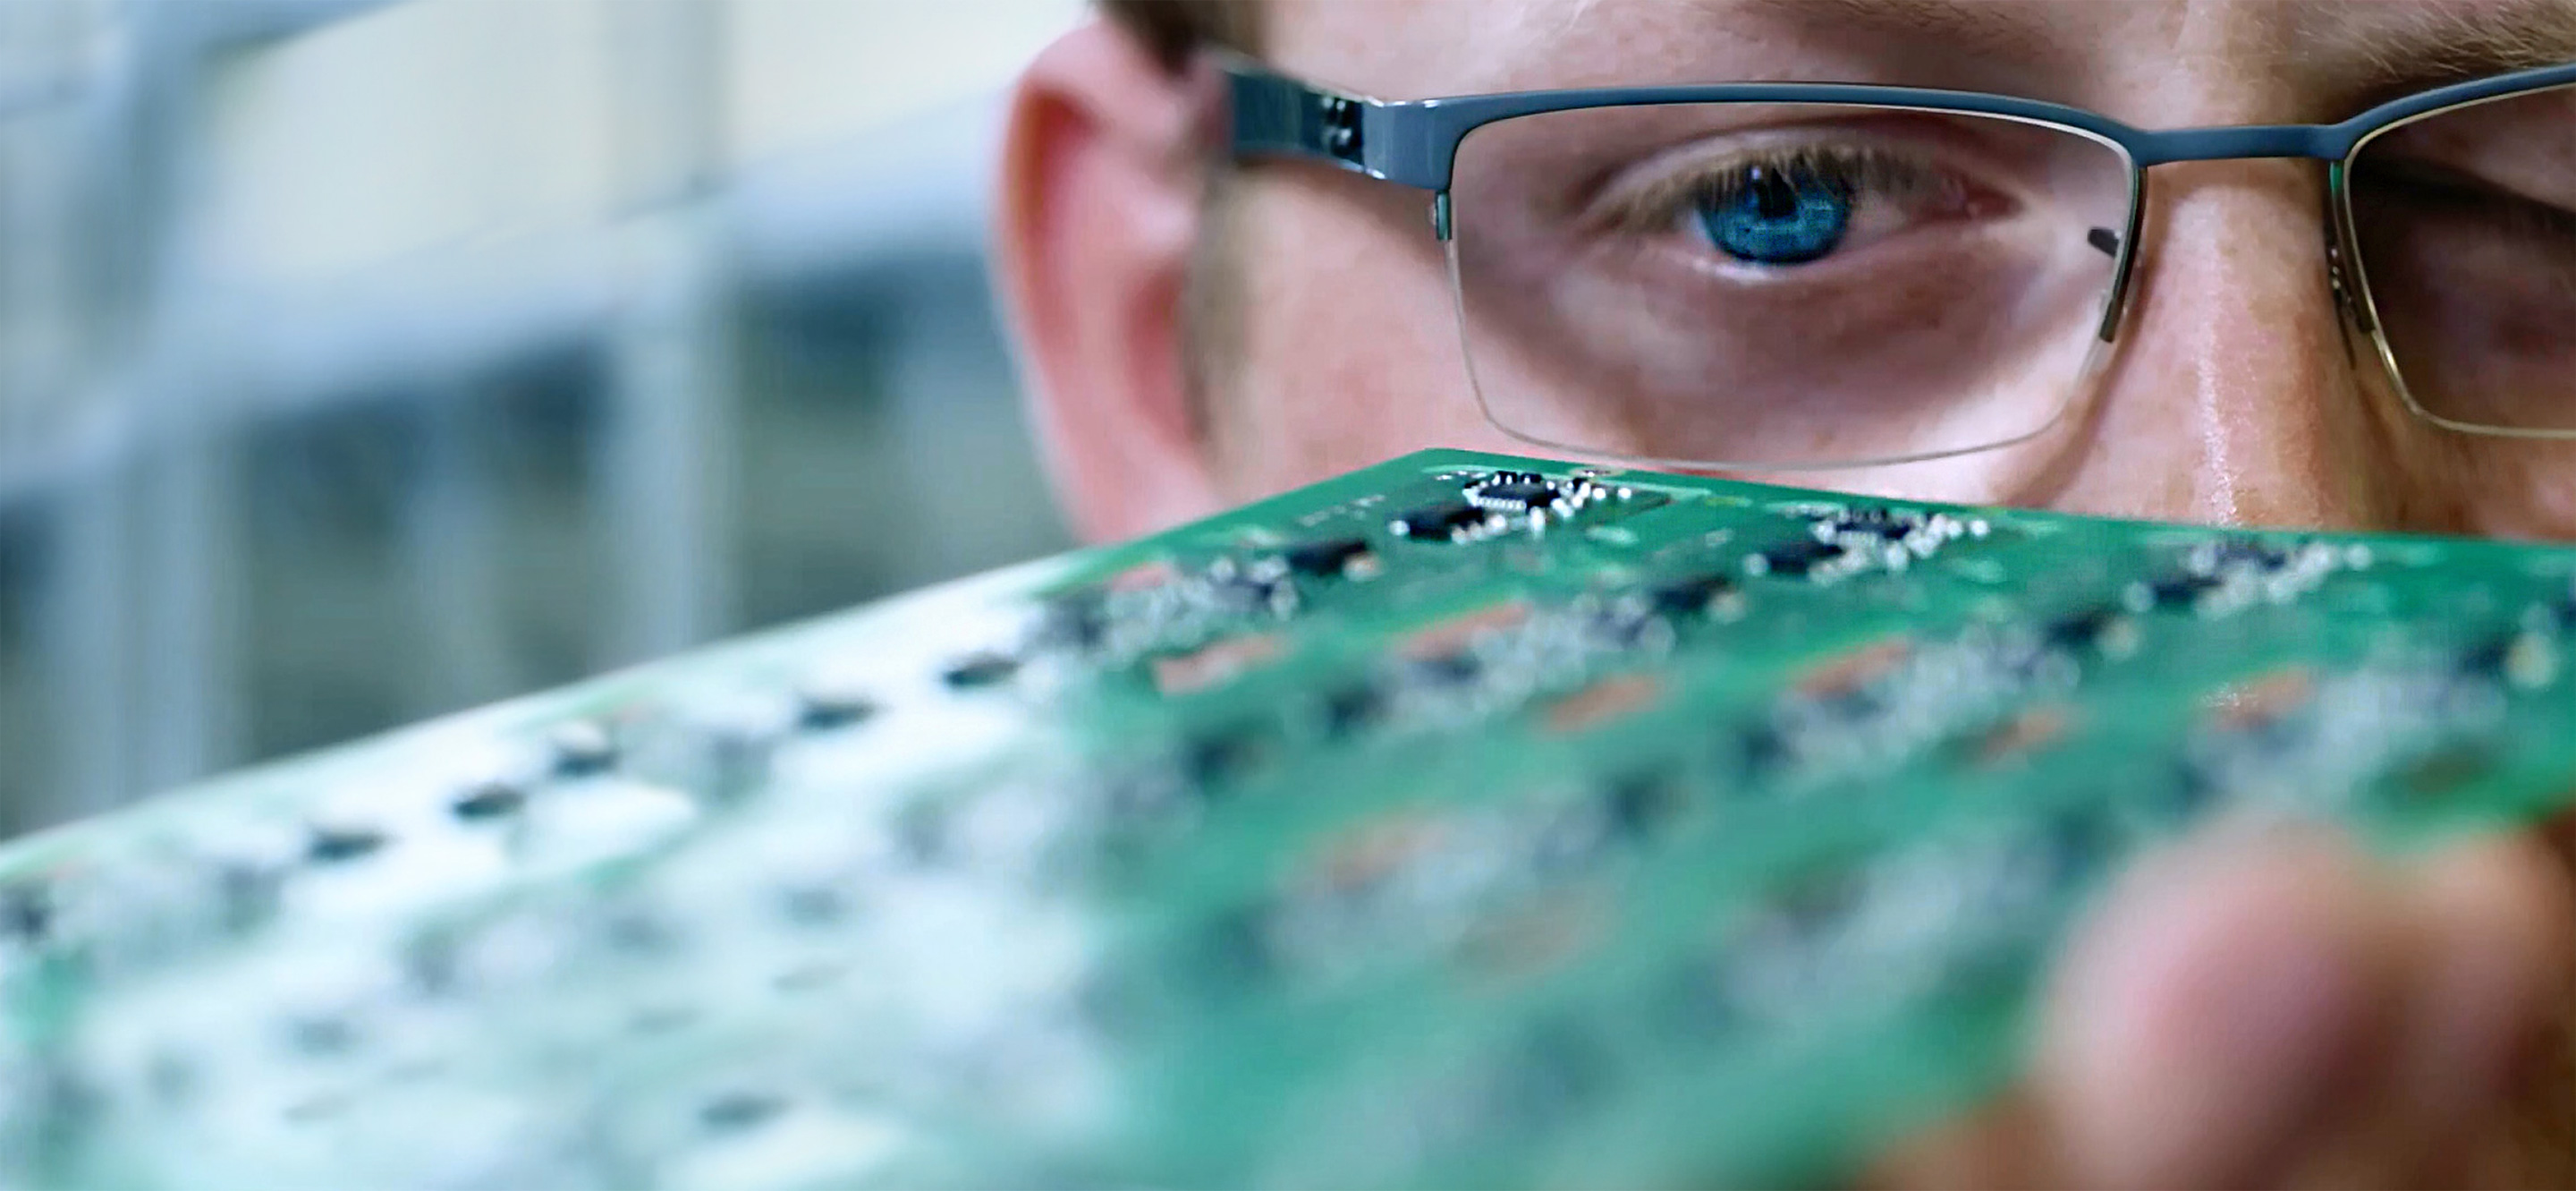 EEMS - Electronic Engineering and Manufacturing Services